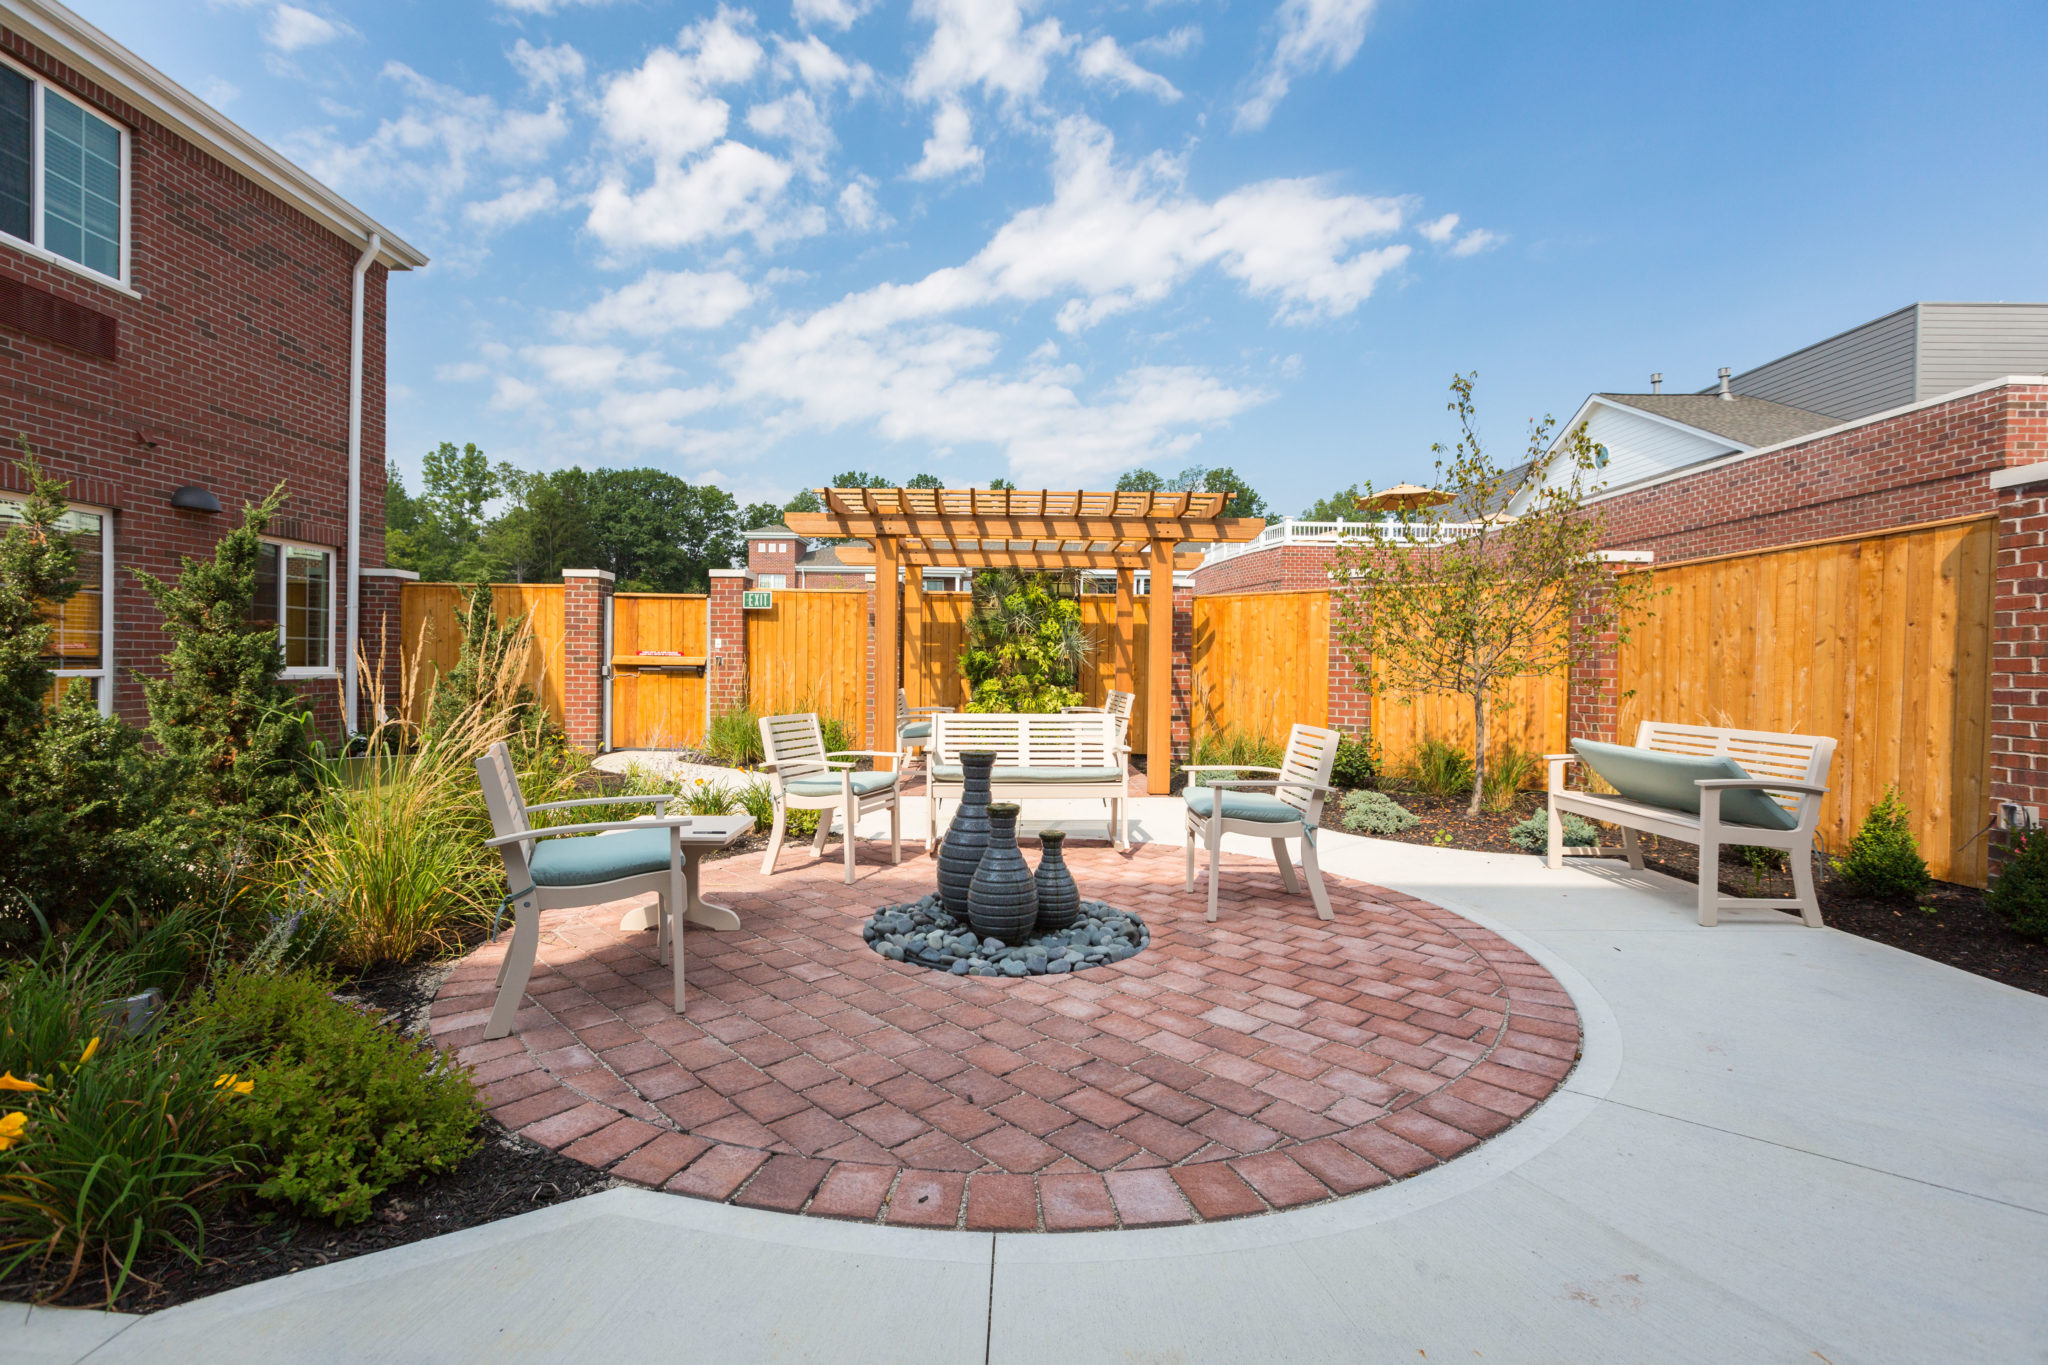 Three Creeks Assisted Living & Memory Care Courtyard.jpg